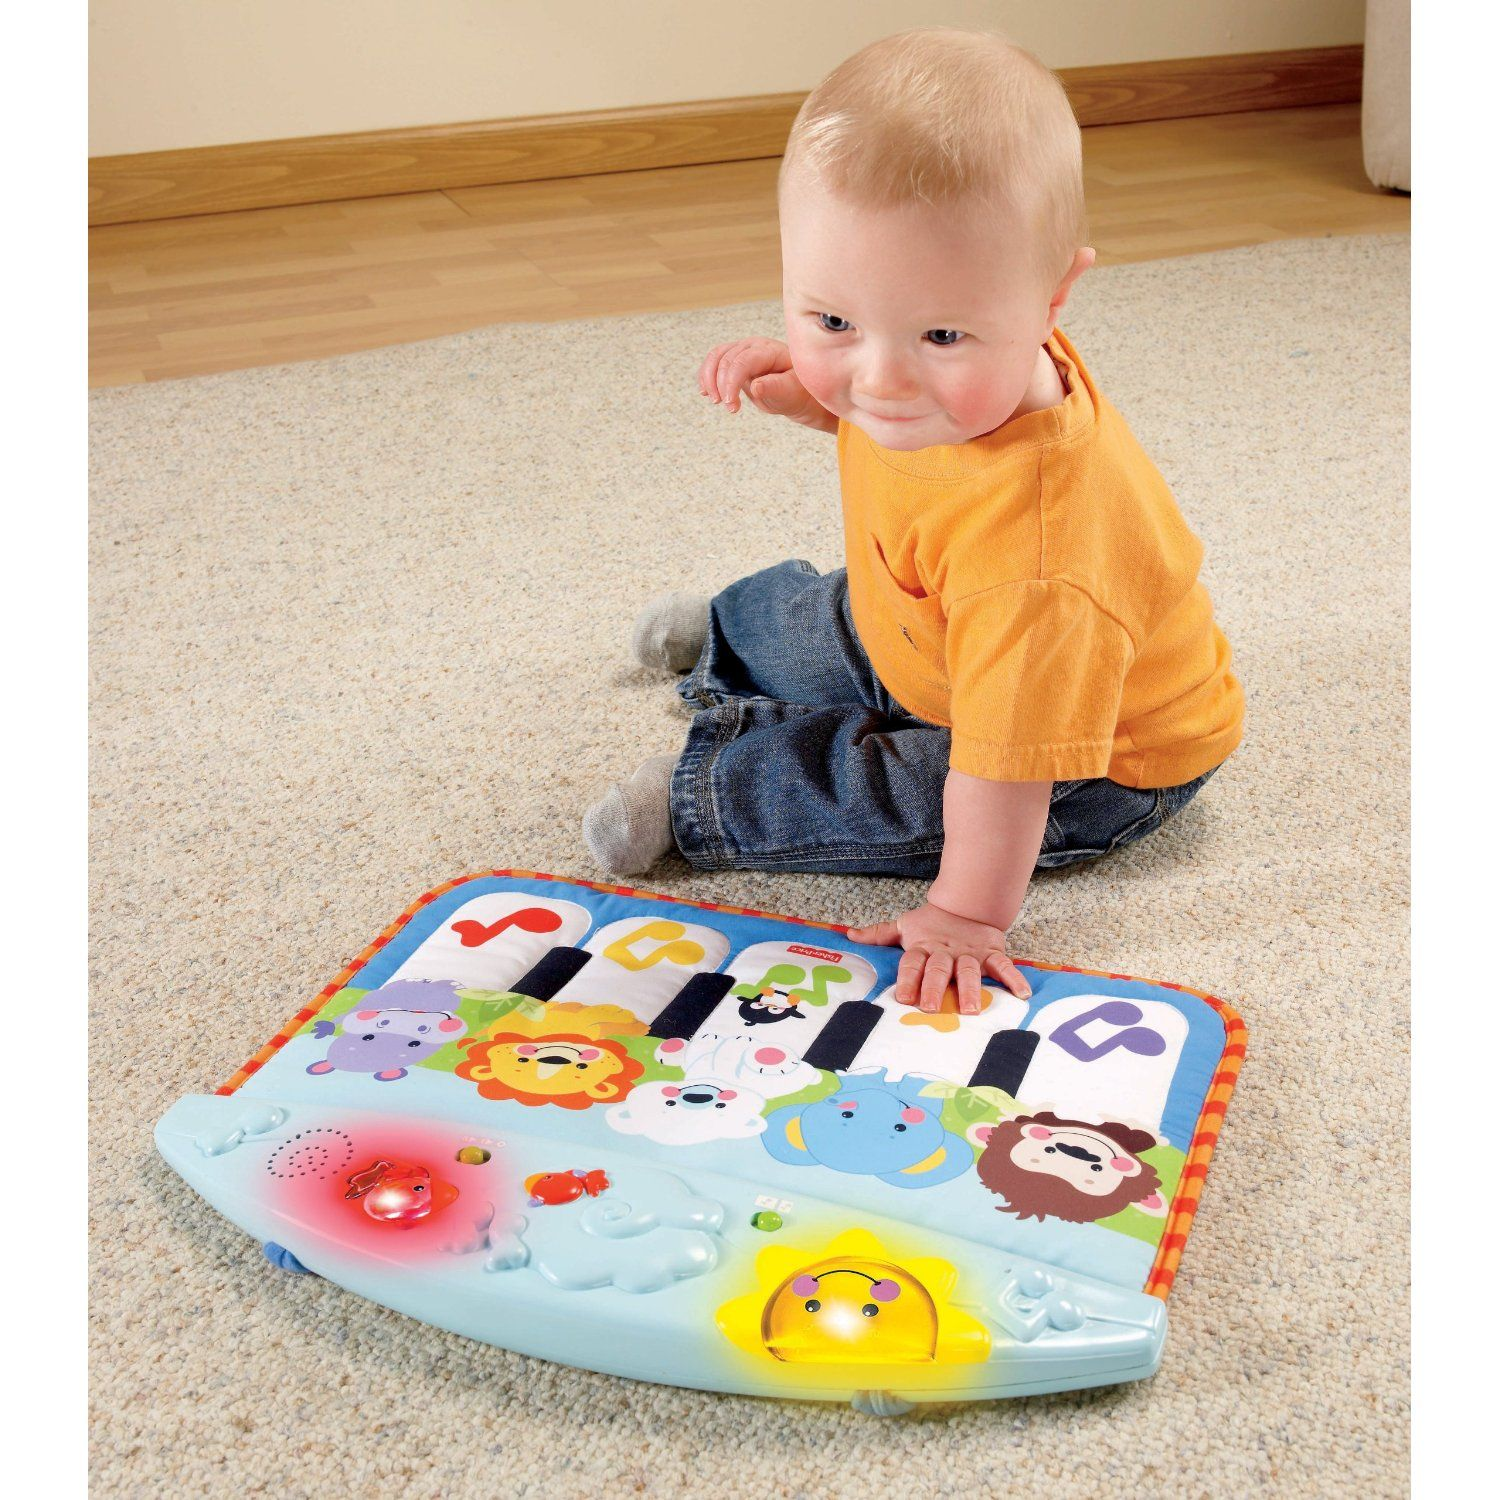 dfa2068311d80 Kick and Play Piano is a long-lasting toy. Tie it up to the playpen ...